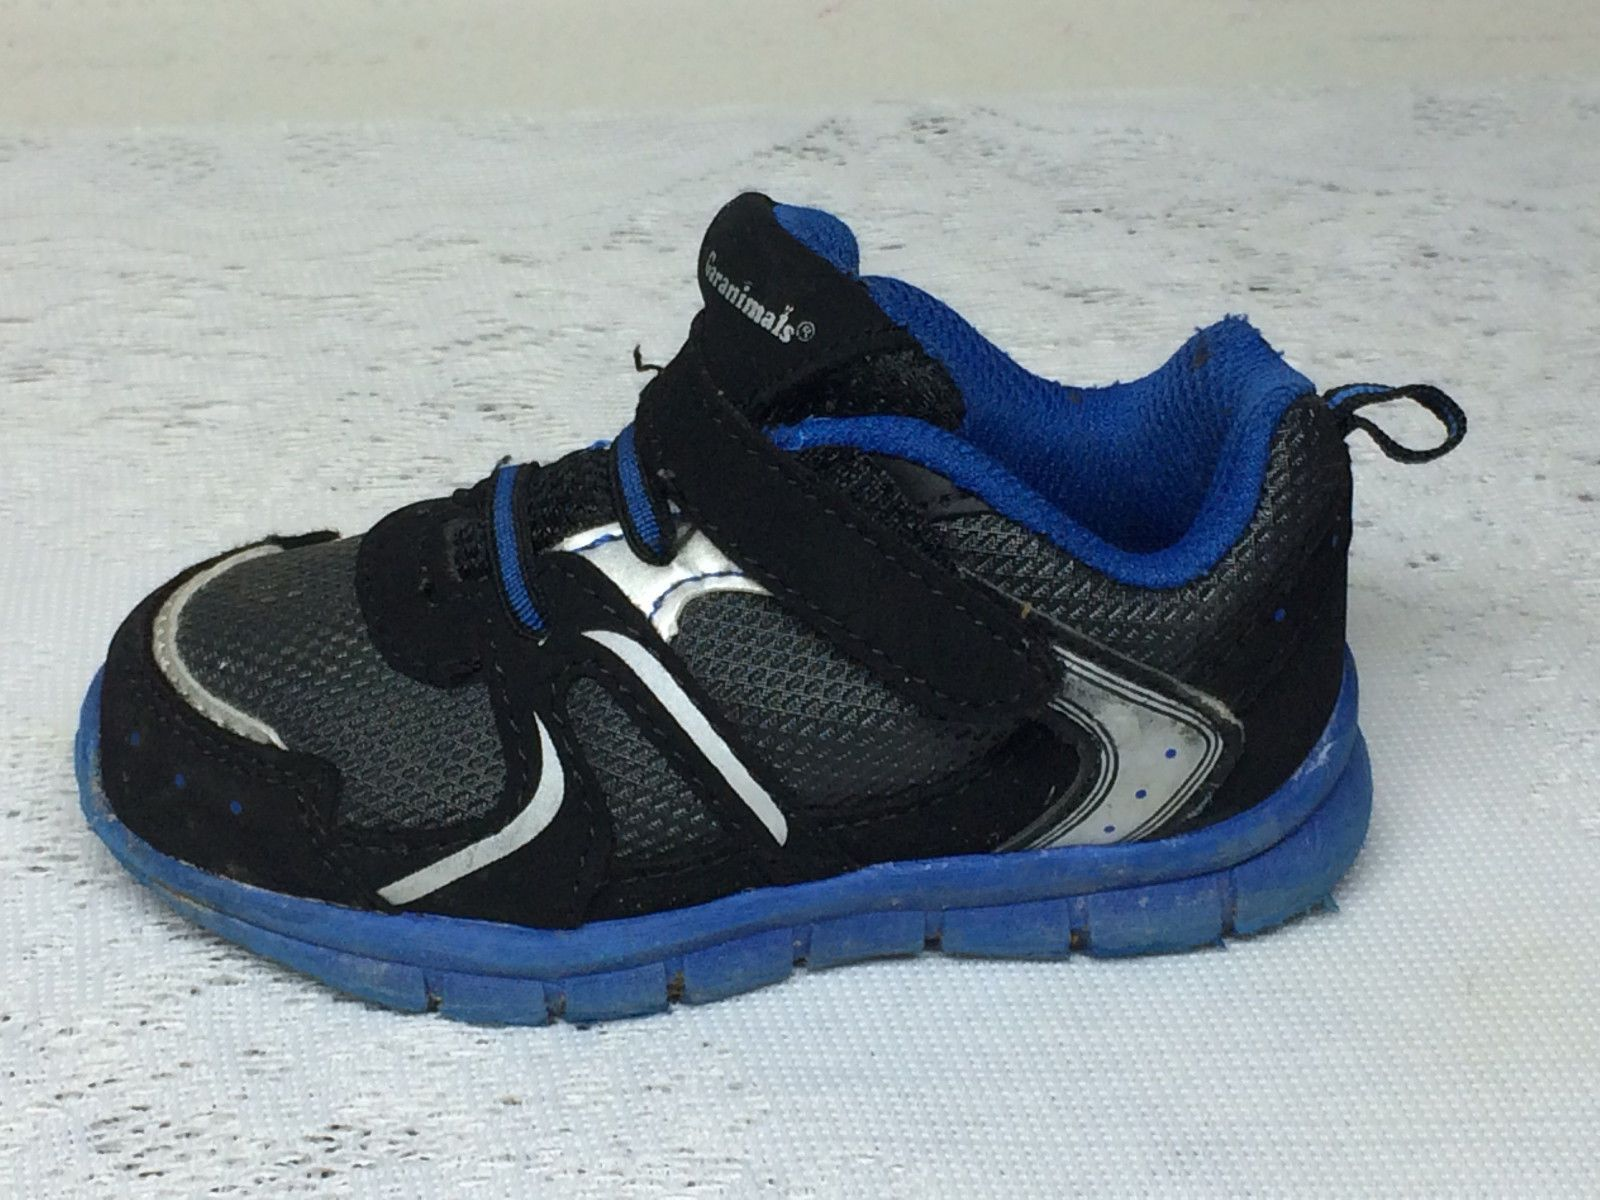 294878549c0 ... GARANIMALS TODDLER BOYS BLUE AND BLACK TENNIS SHOES SNEAKERS US SIZE 6  For Sale - Item